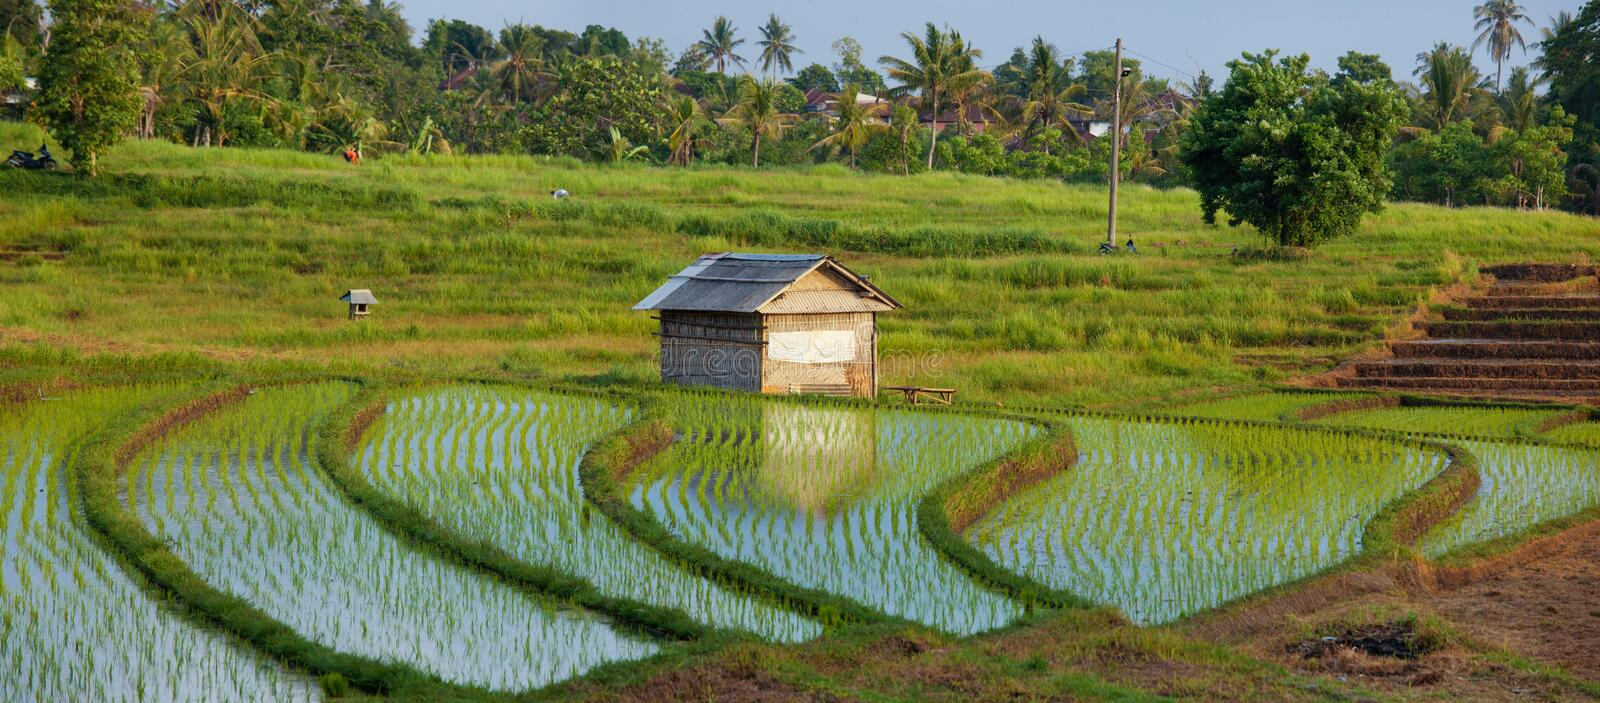 Rice water terrace field with green plants in sunset with shack in Bali, Indonesia royalty free stock photo